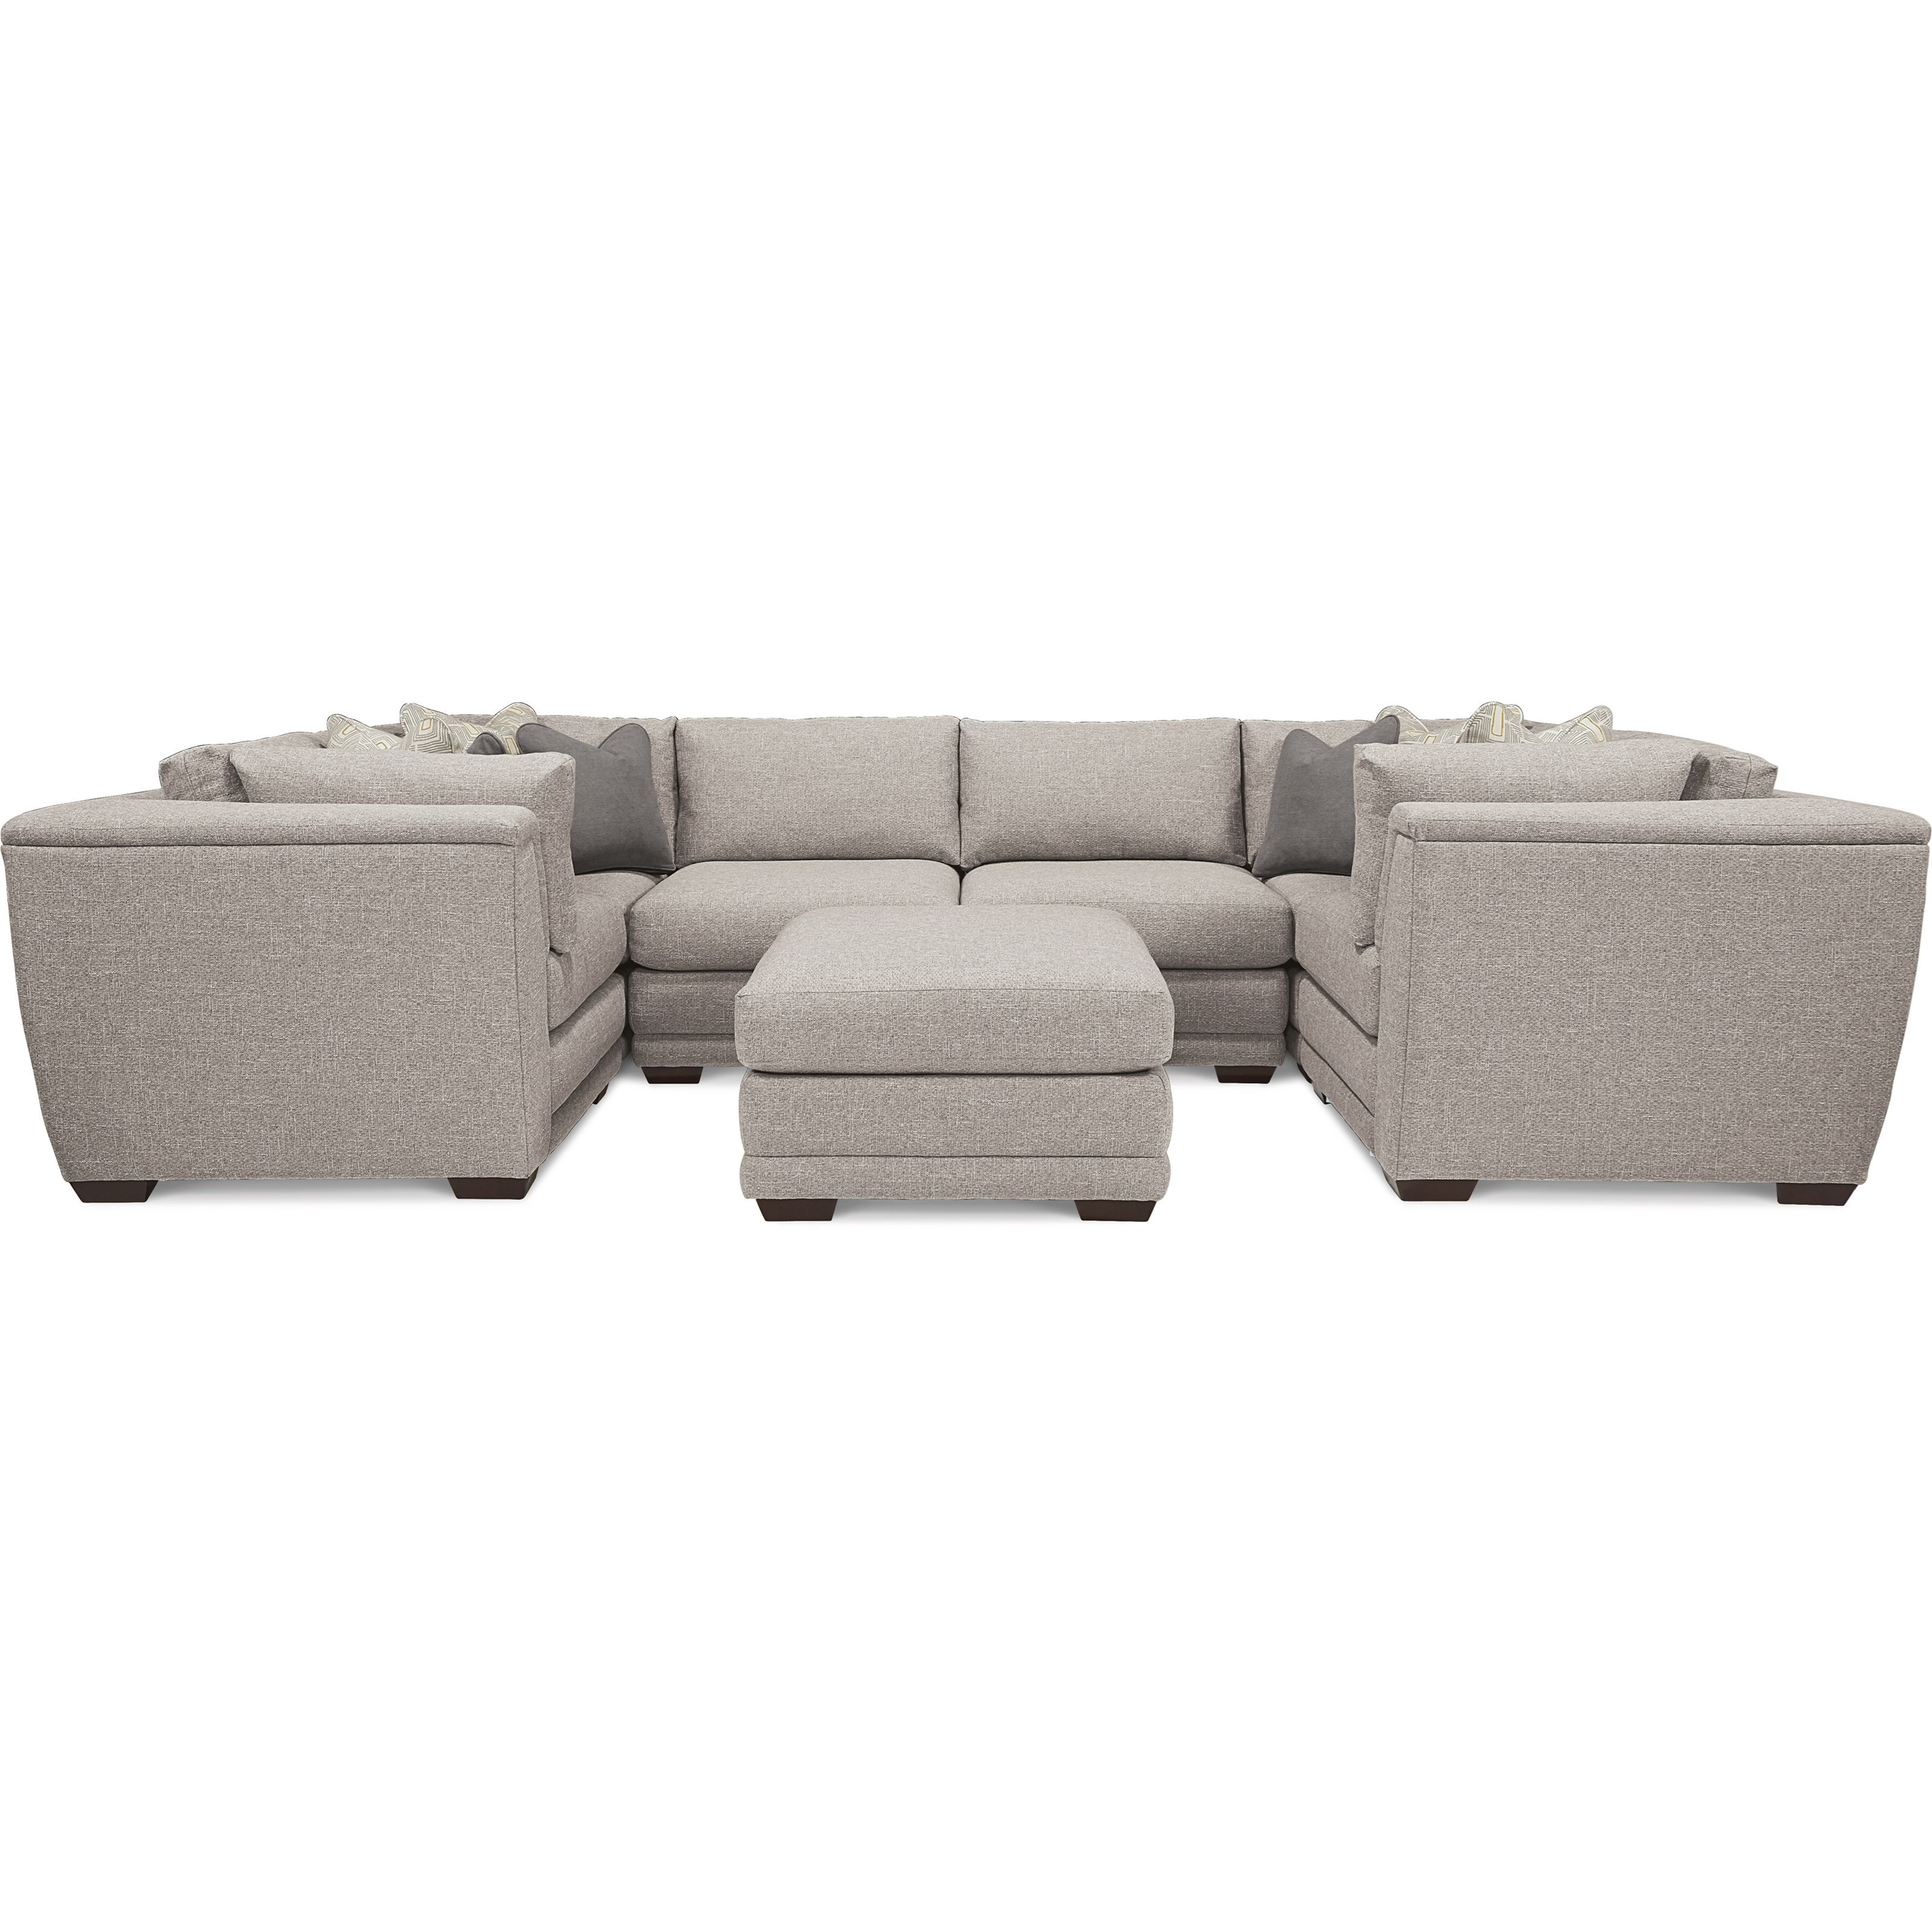 La Z Boy Ridgemont 7 Piece U Shaped Sectional With Ottoman Bennett S Furniture And Mattresses Sectional Sofas